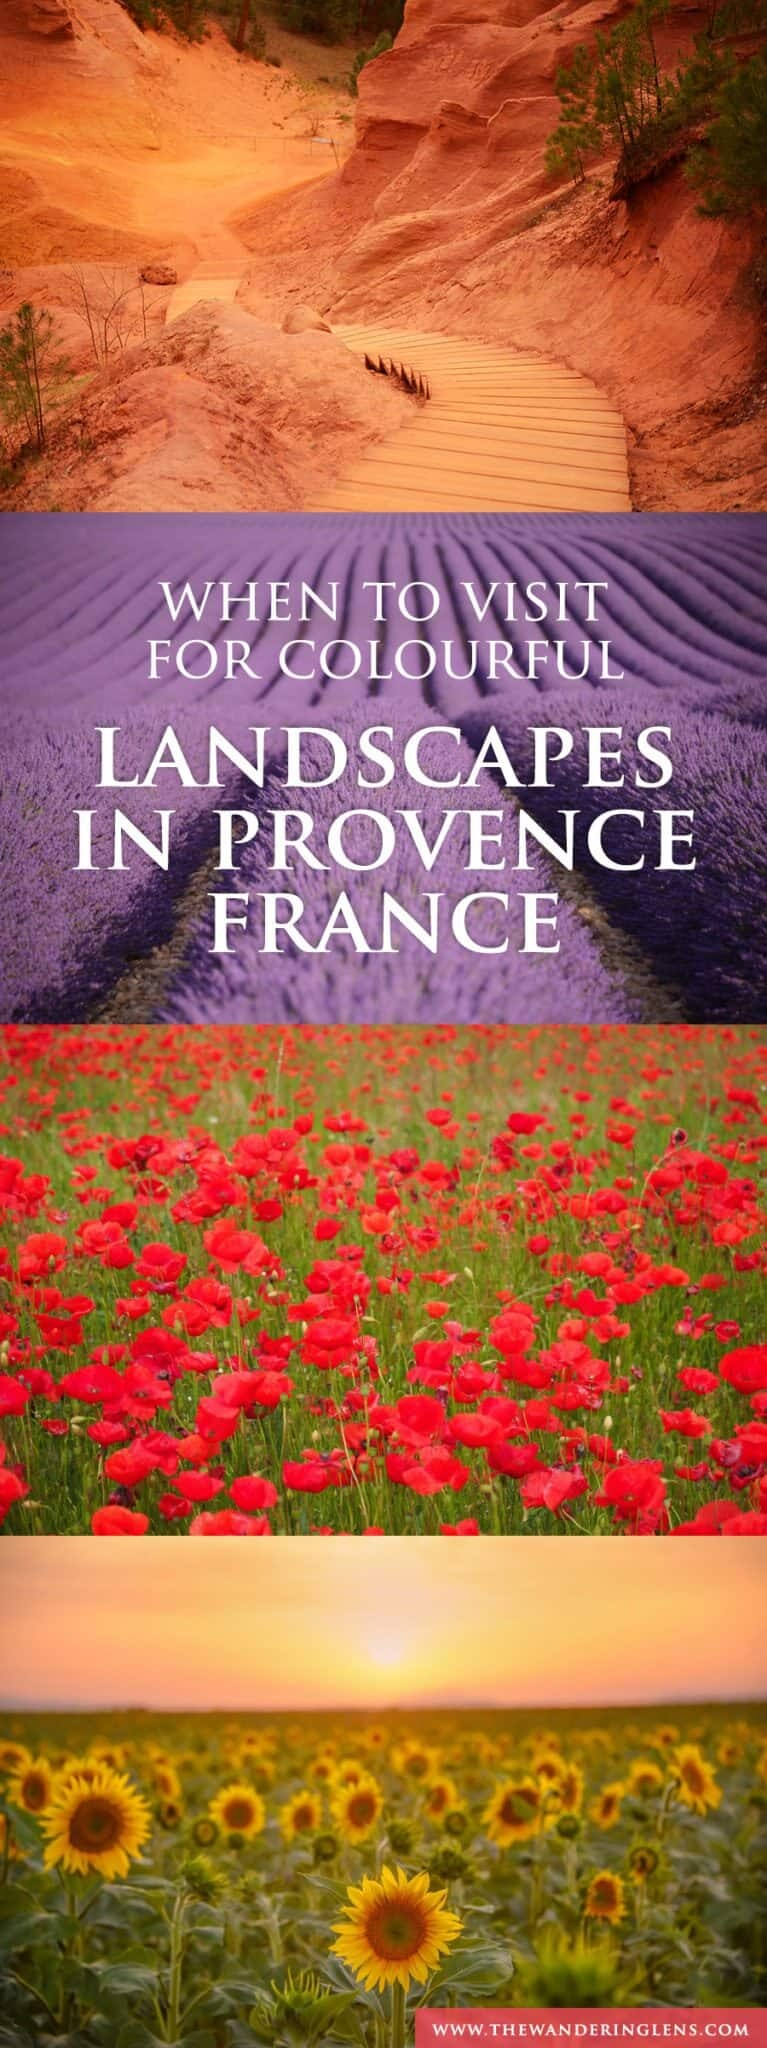 Provence France, When to visit to photograph the lavender fields of Provence and also the calanques, poppy fields and sunflowers.